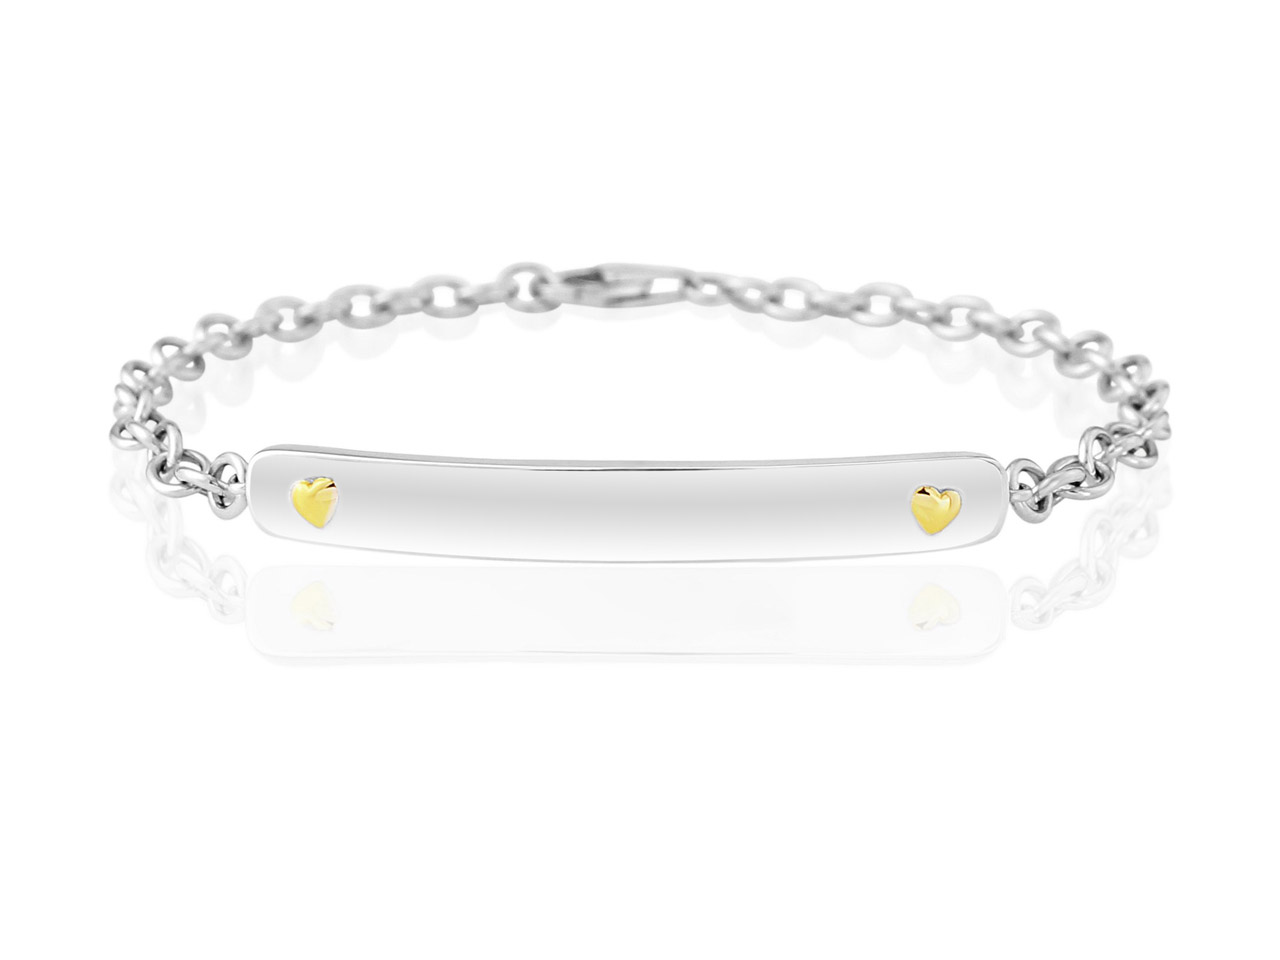 Sterling Silver 9ct Yellow Identity Bracelet With Heart Detail Can Be   Engraved 7